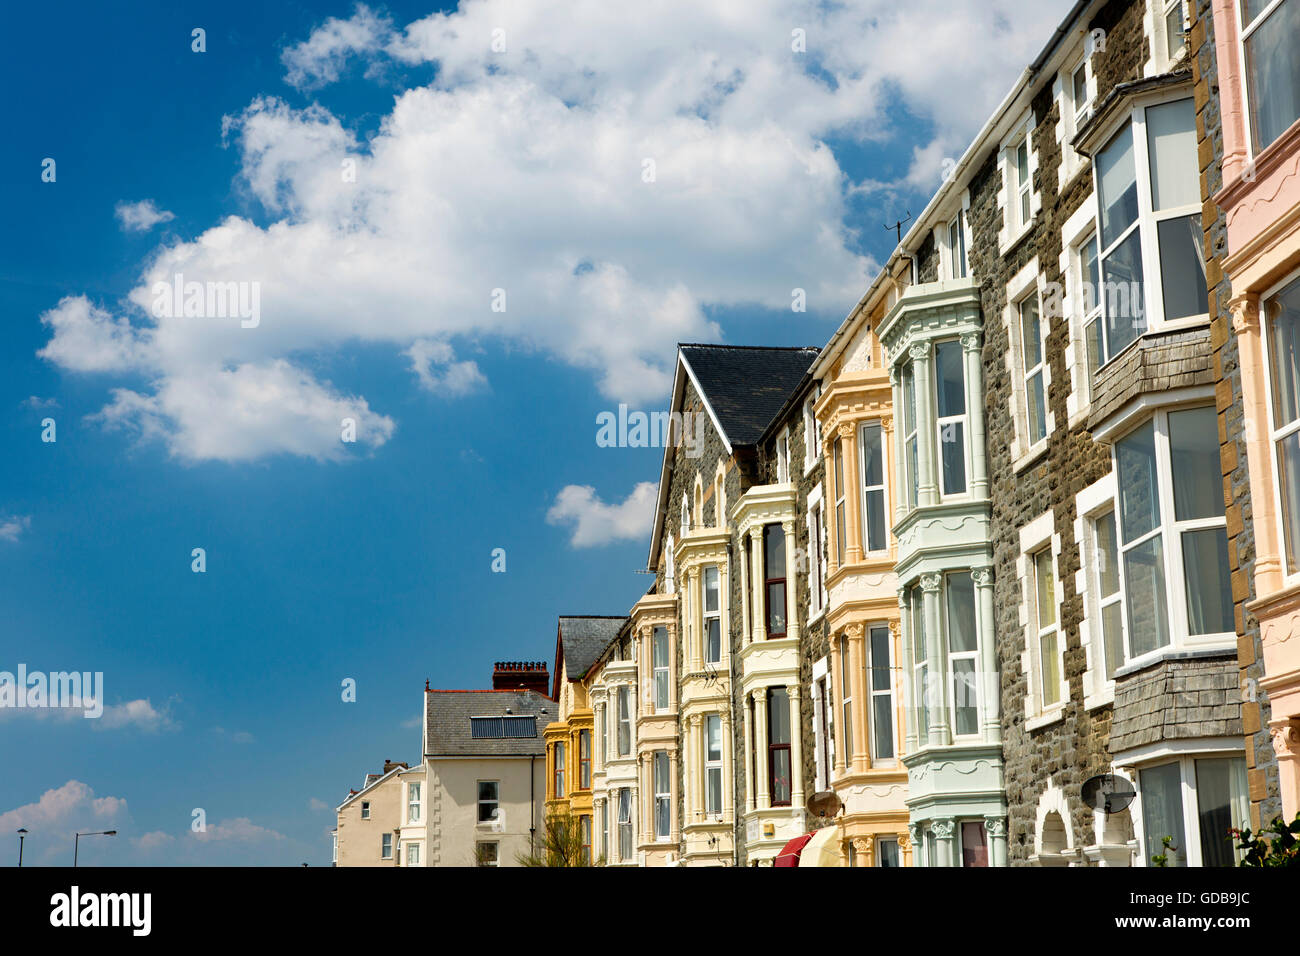 UK, Wales, Gwynedd, Barmouth, Marine Parade, blue sky above tall Victorian seafront houses - Stock Image